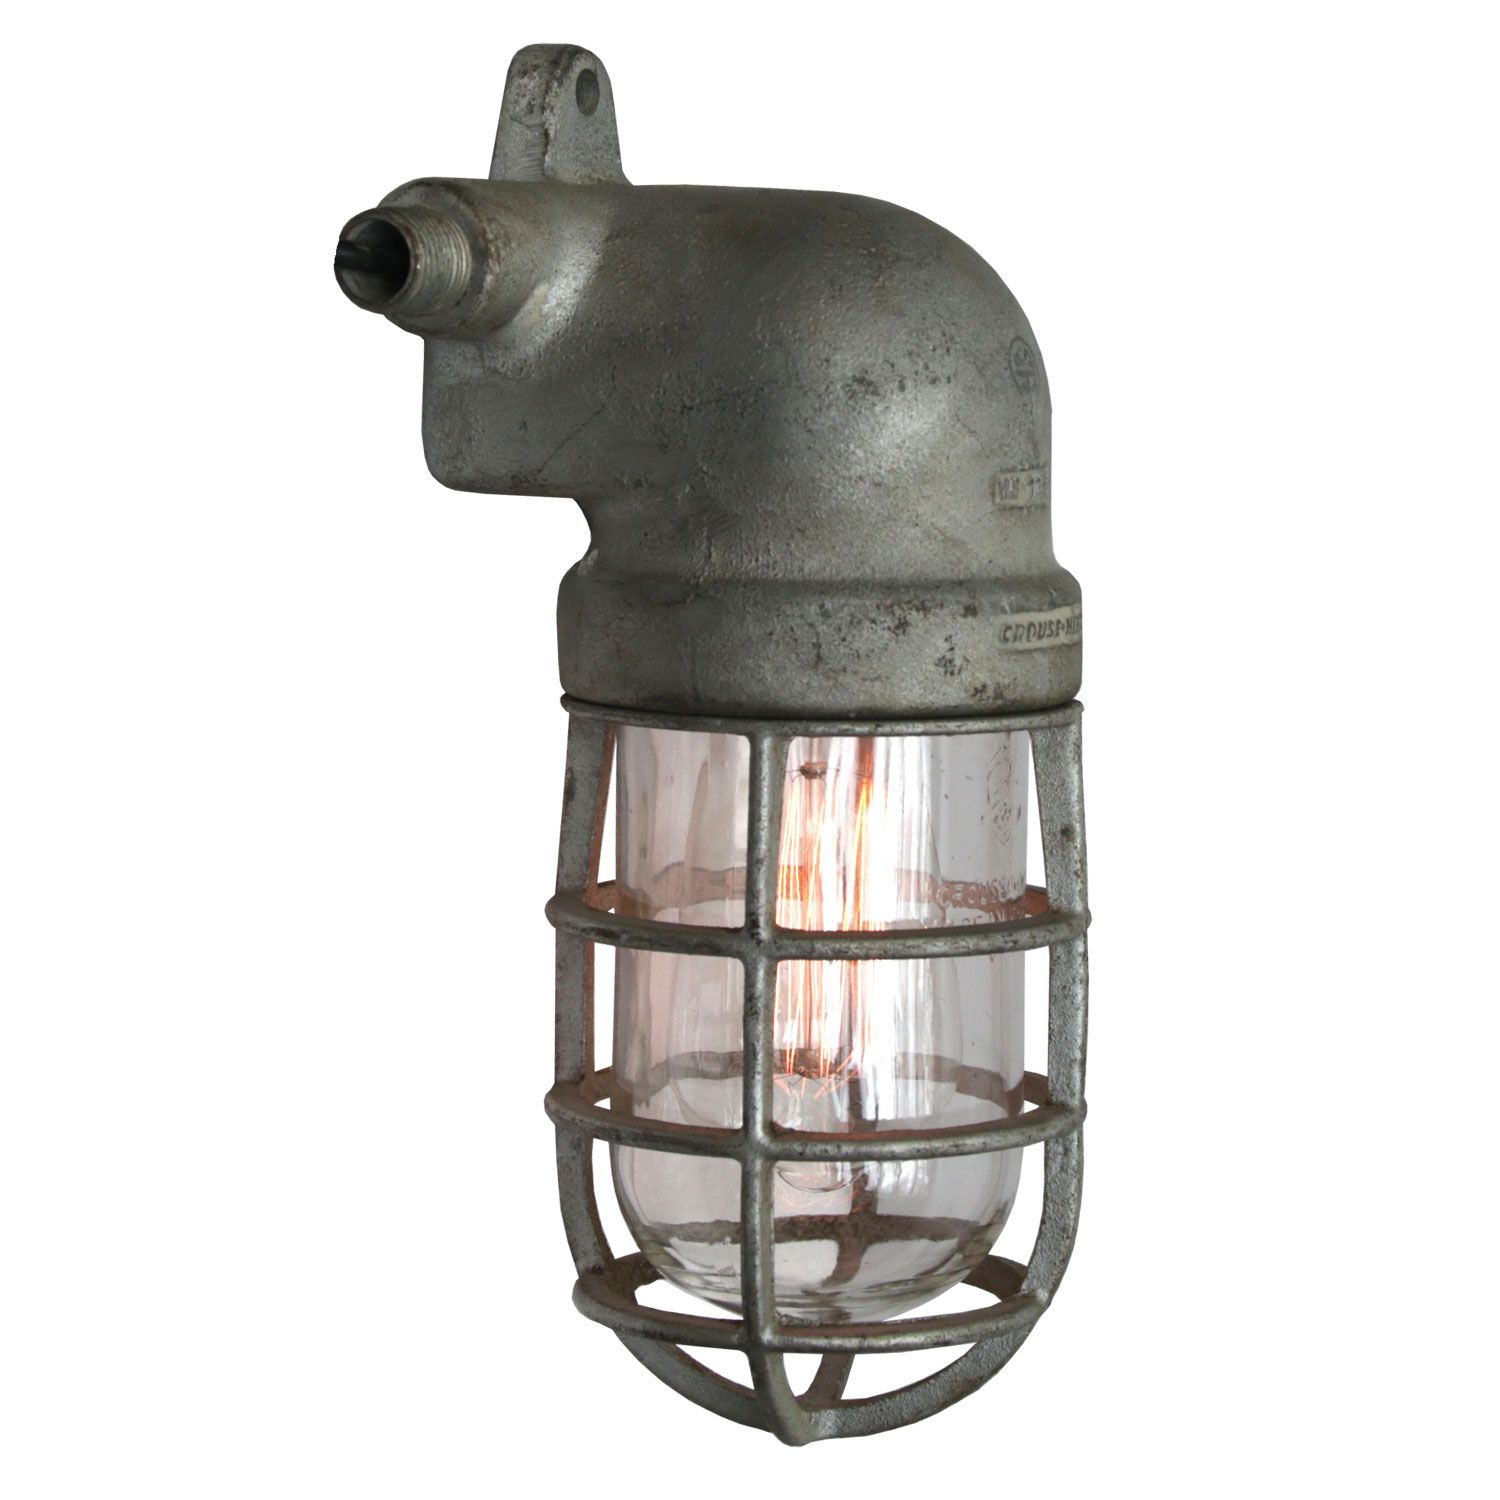 Crouse hinds wall usa lights 360volt the biggest collection crouse hinds wall usa lights 360volt the biggest collection vintage industrial lighting arubaitofo Choice Image